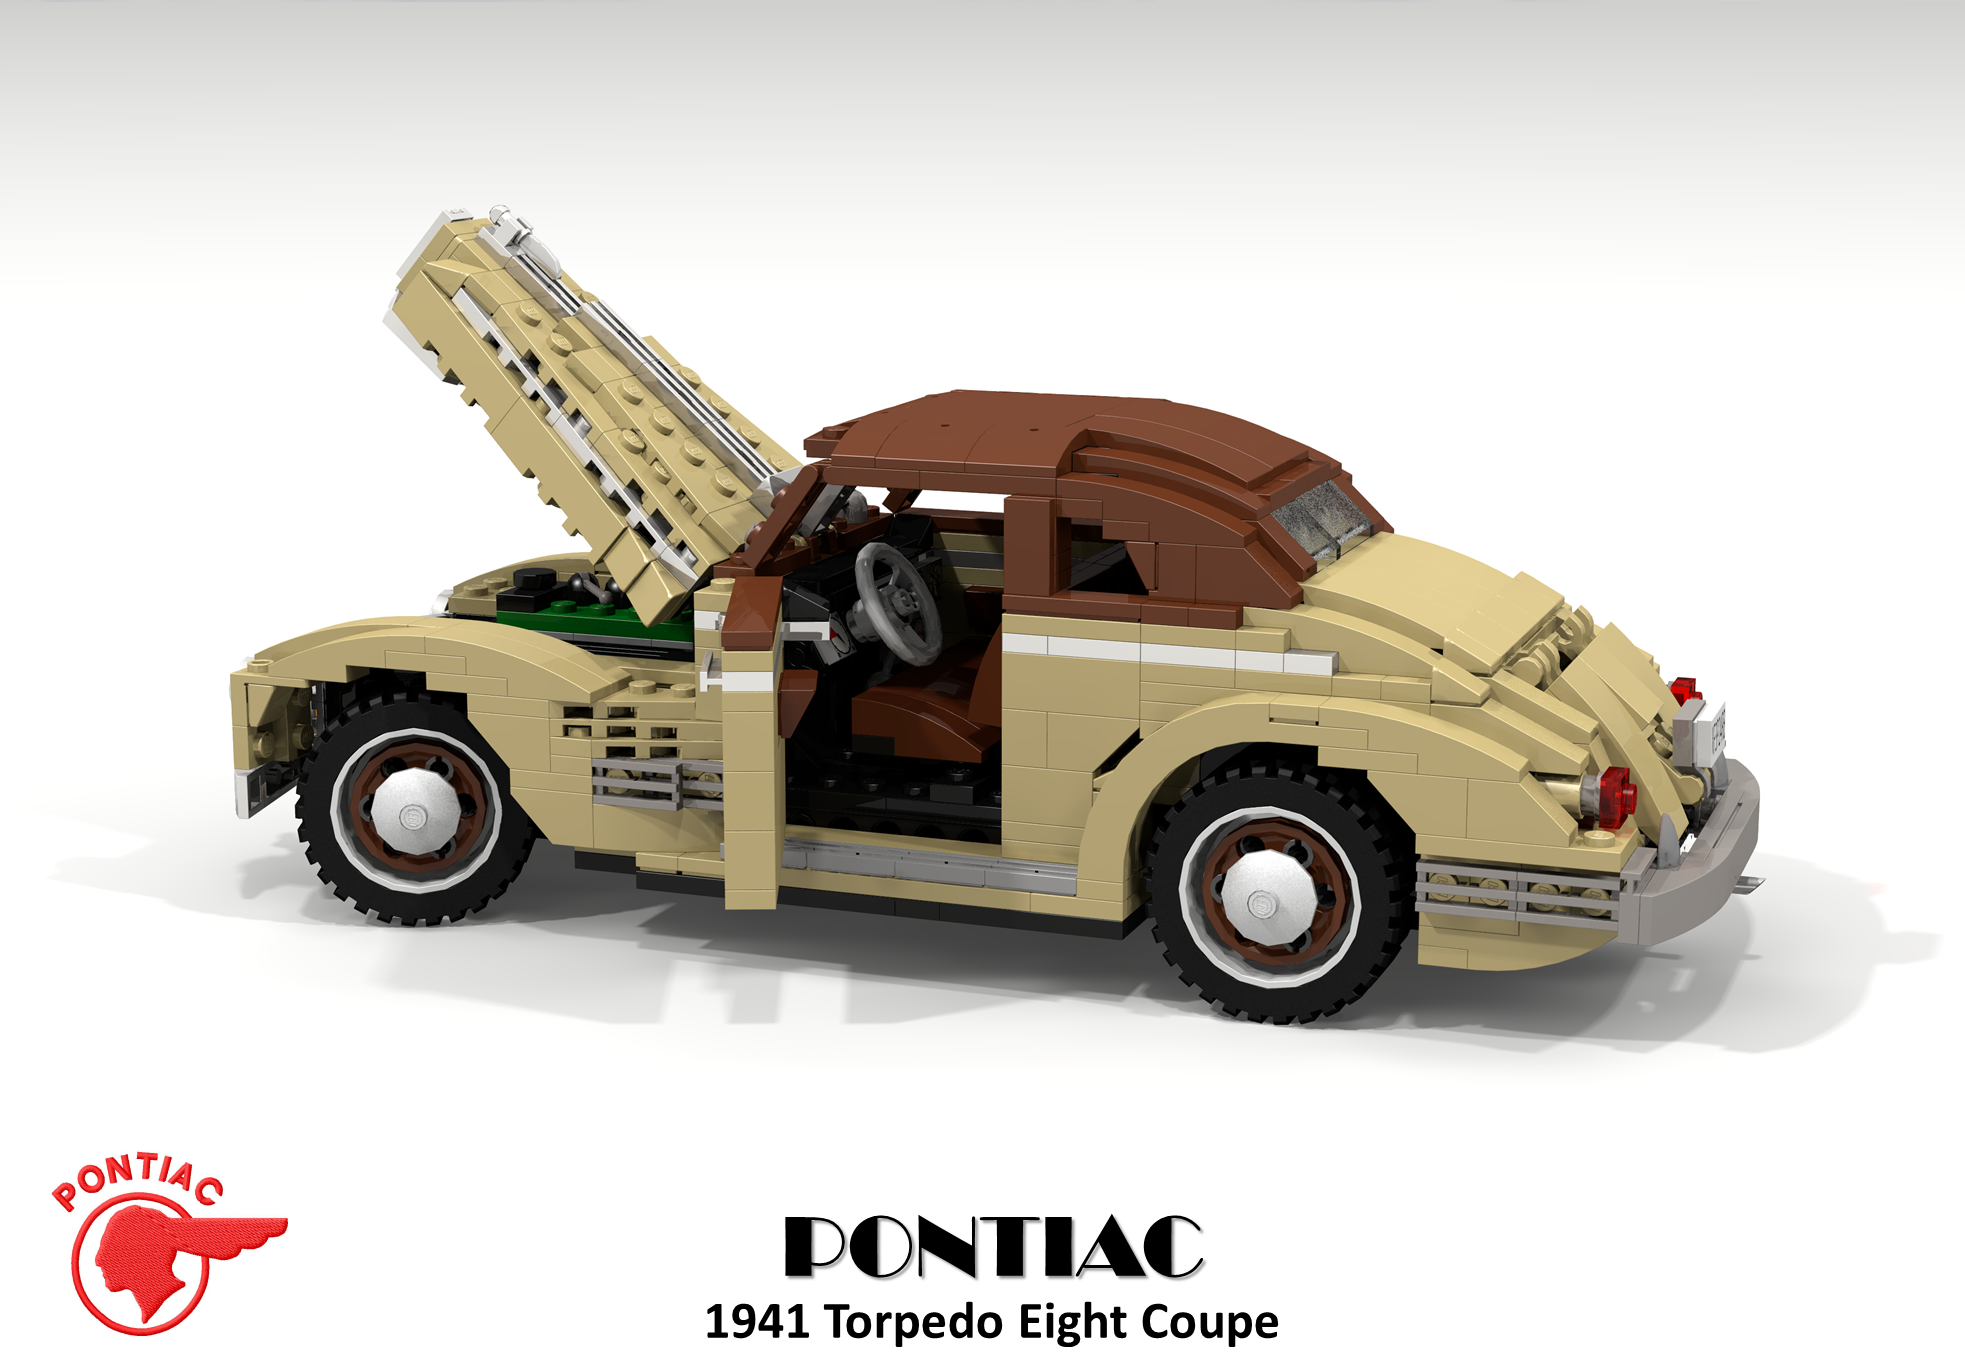 pontiac_1941_torpedo_eight_coupe_05.png